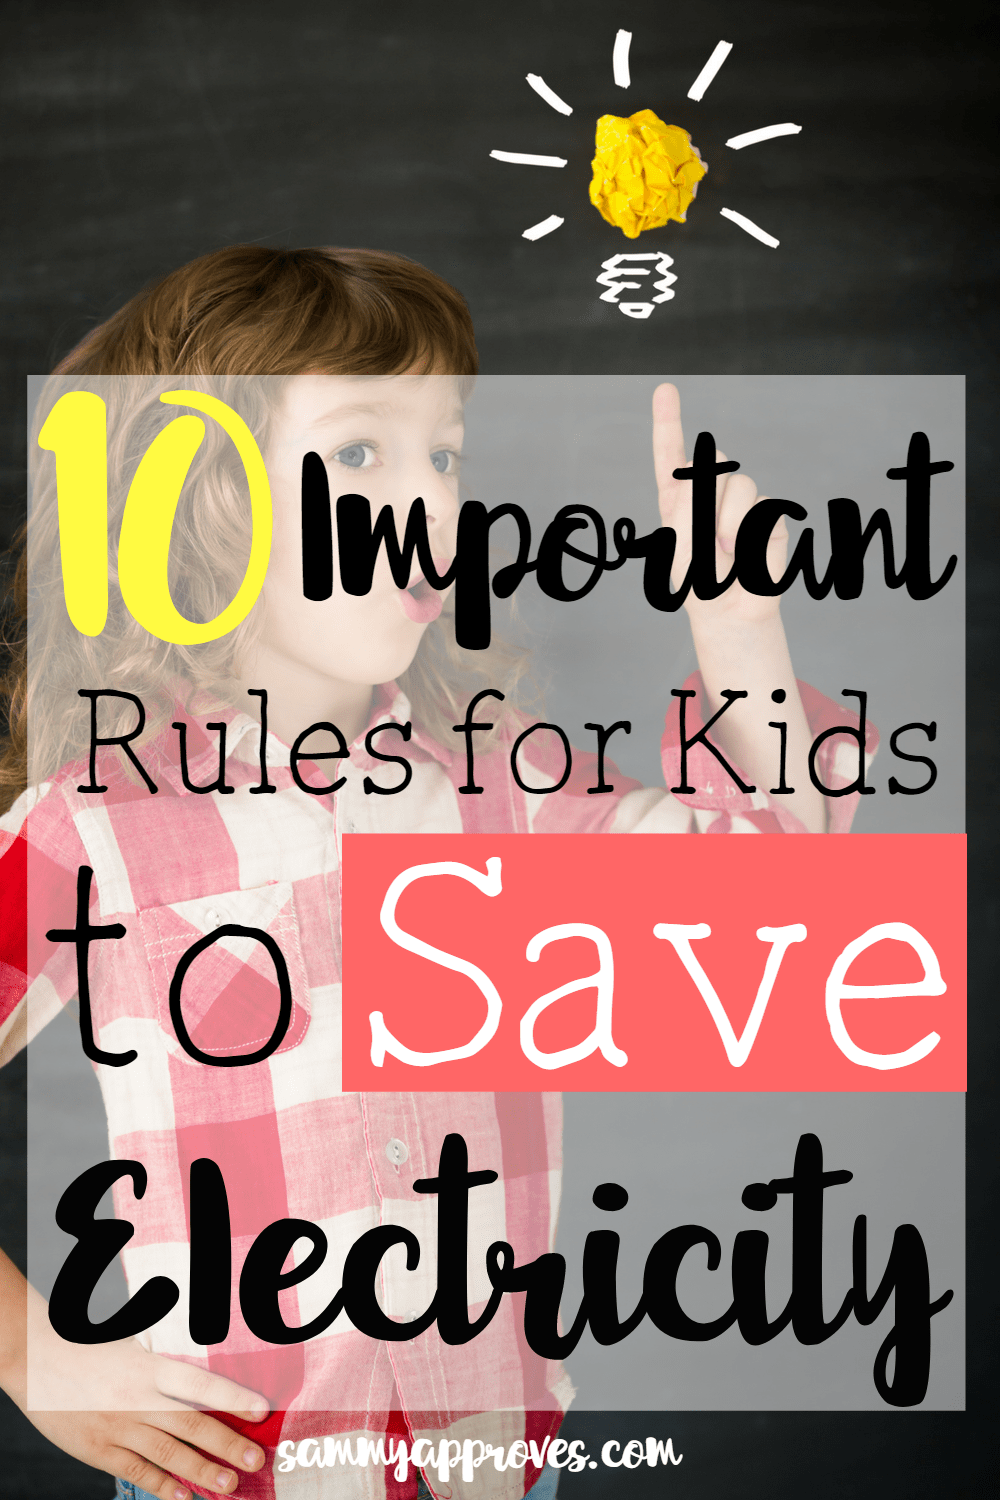 10 Important Rules for Kids to Save Electricity